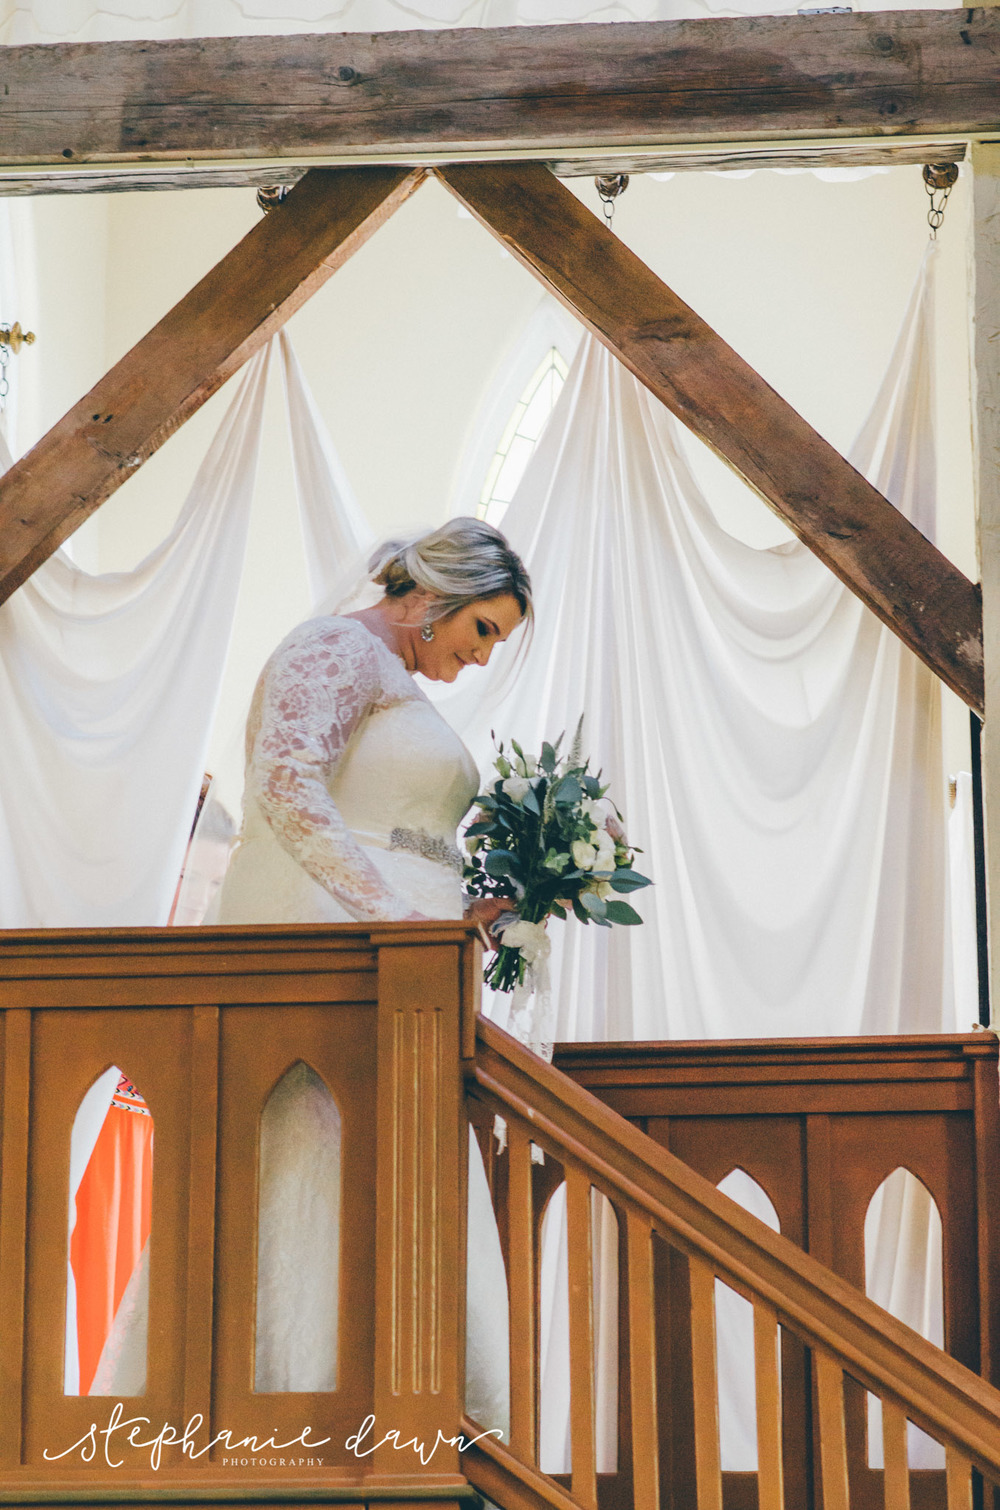 Old Trinity of Paseo | An Intimate Wedding